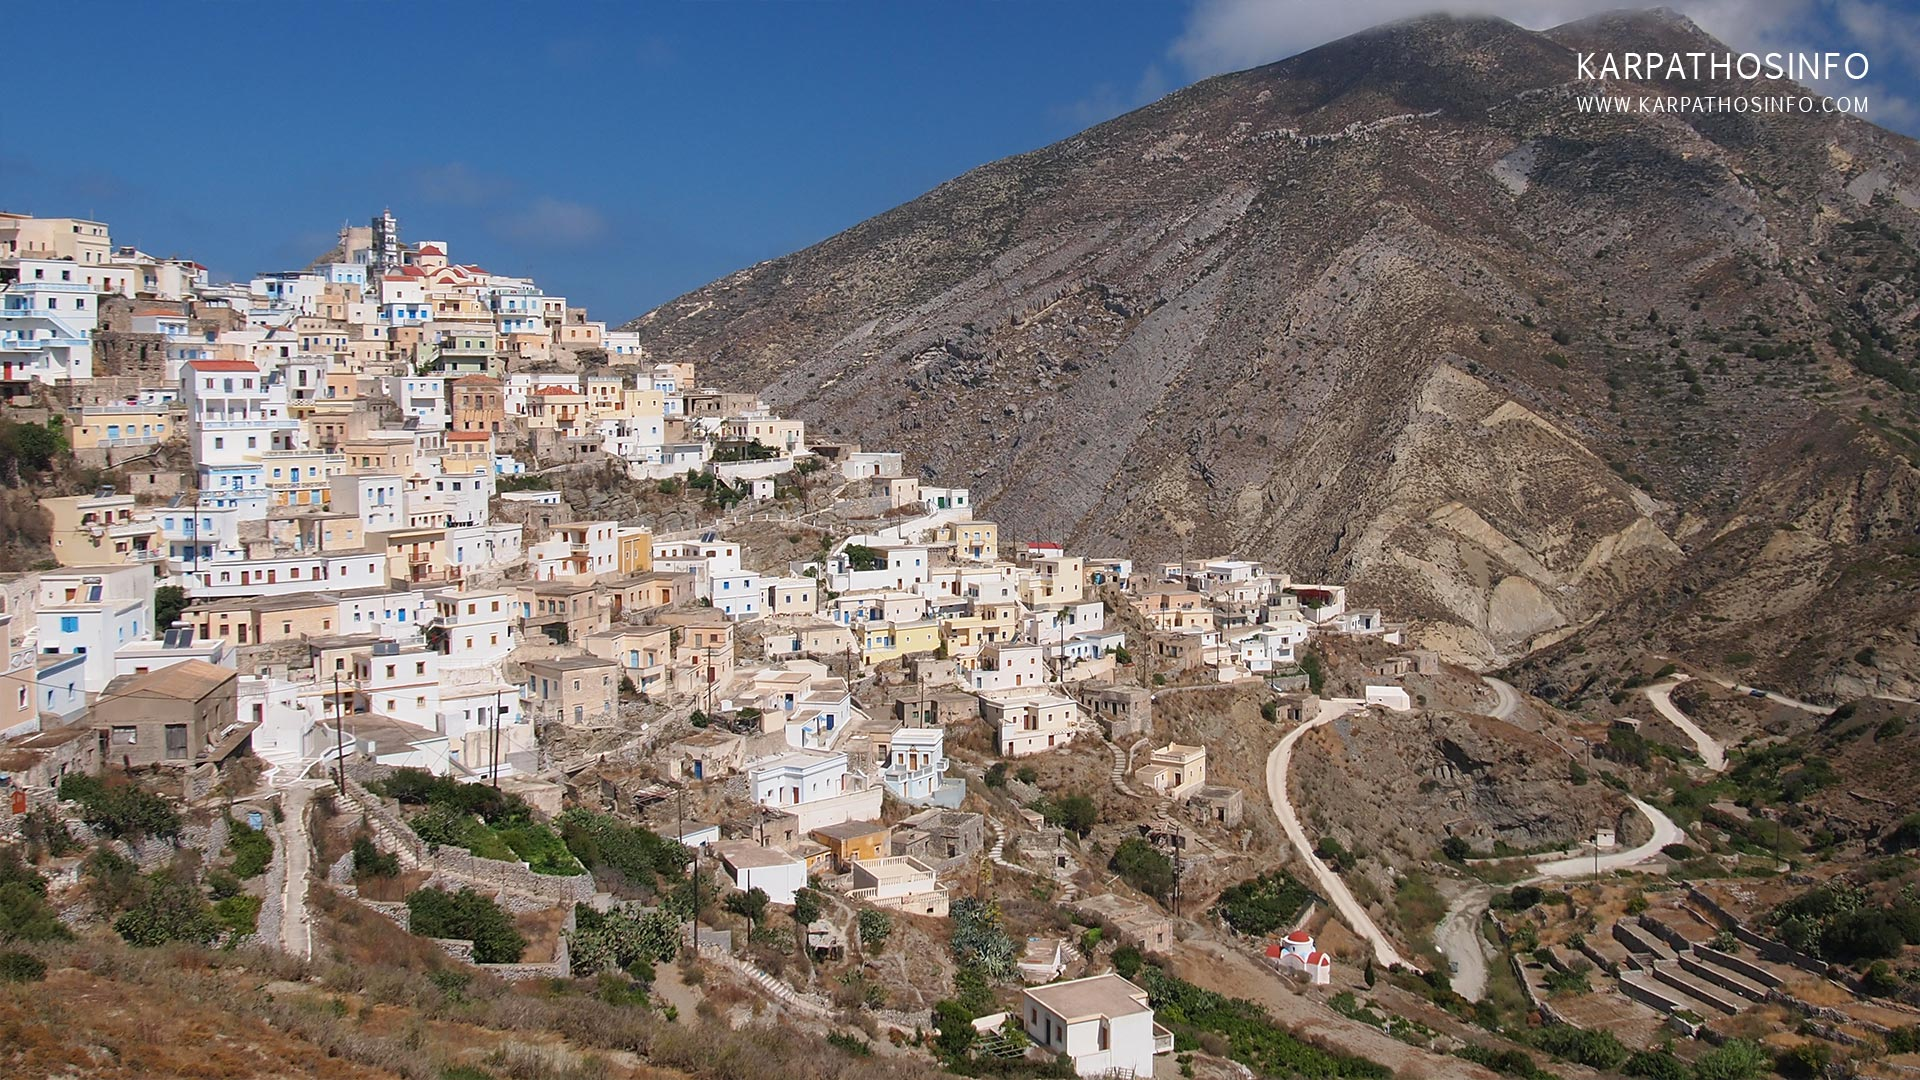 images/slider/karpathos-villages.jpg